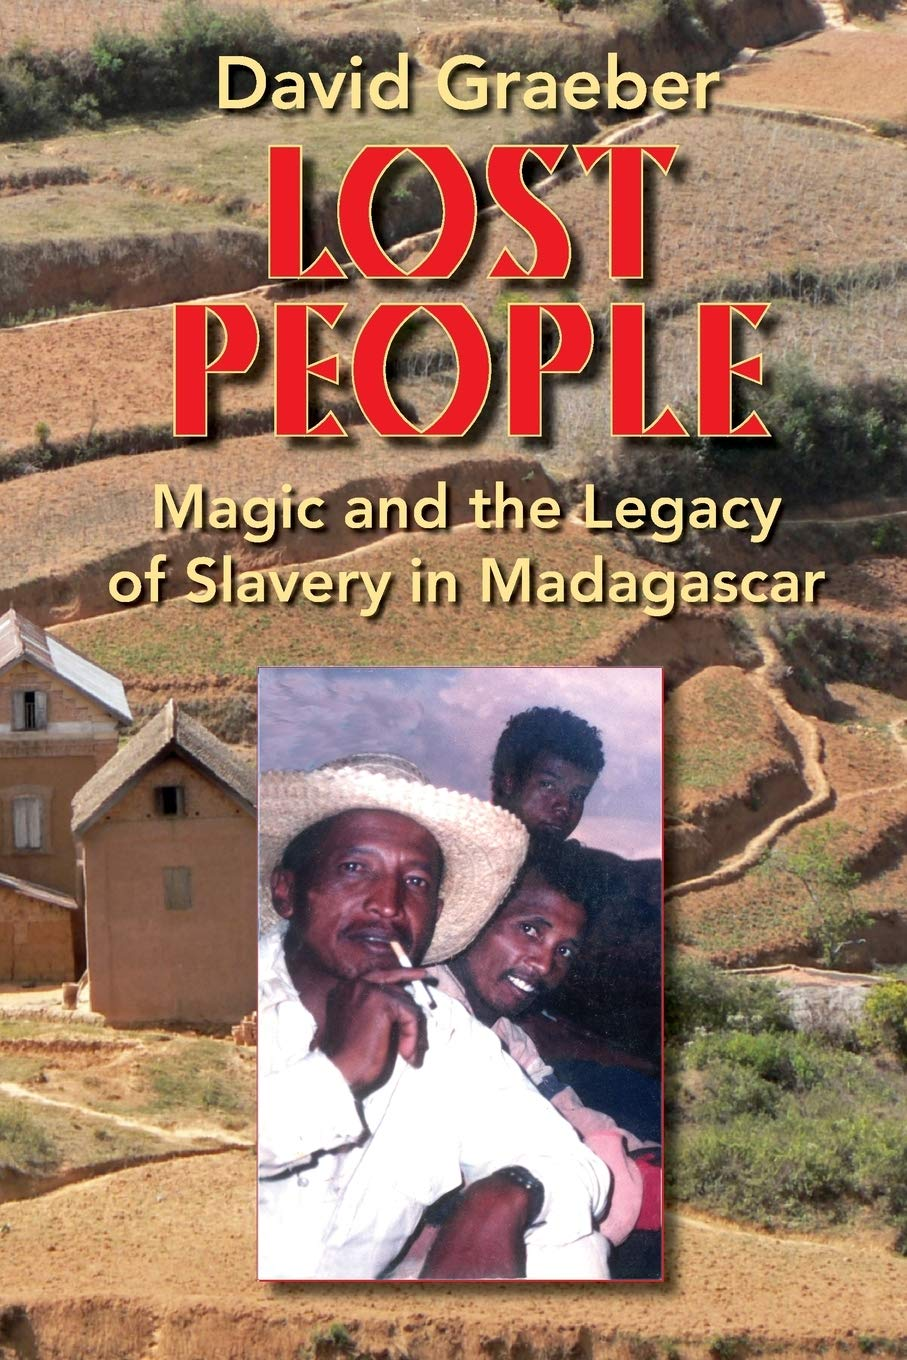 Lost People: Magic and the Legacy of Slavery in Madagascar: Graeber, David:  9780253219152: Amazon.com: Books